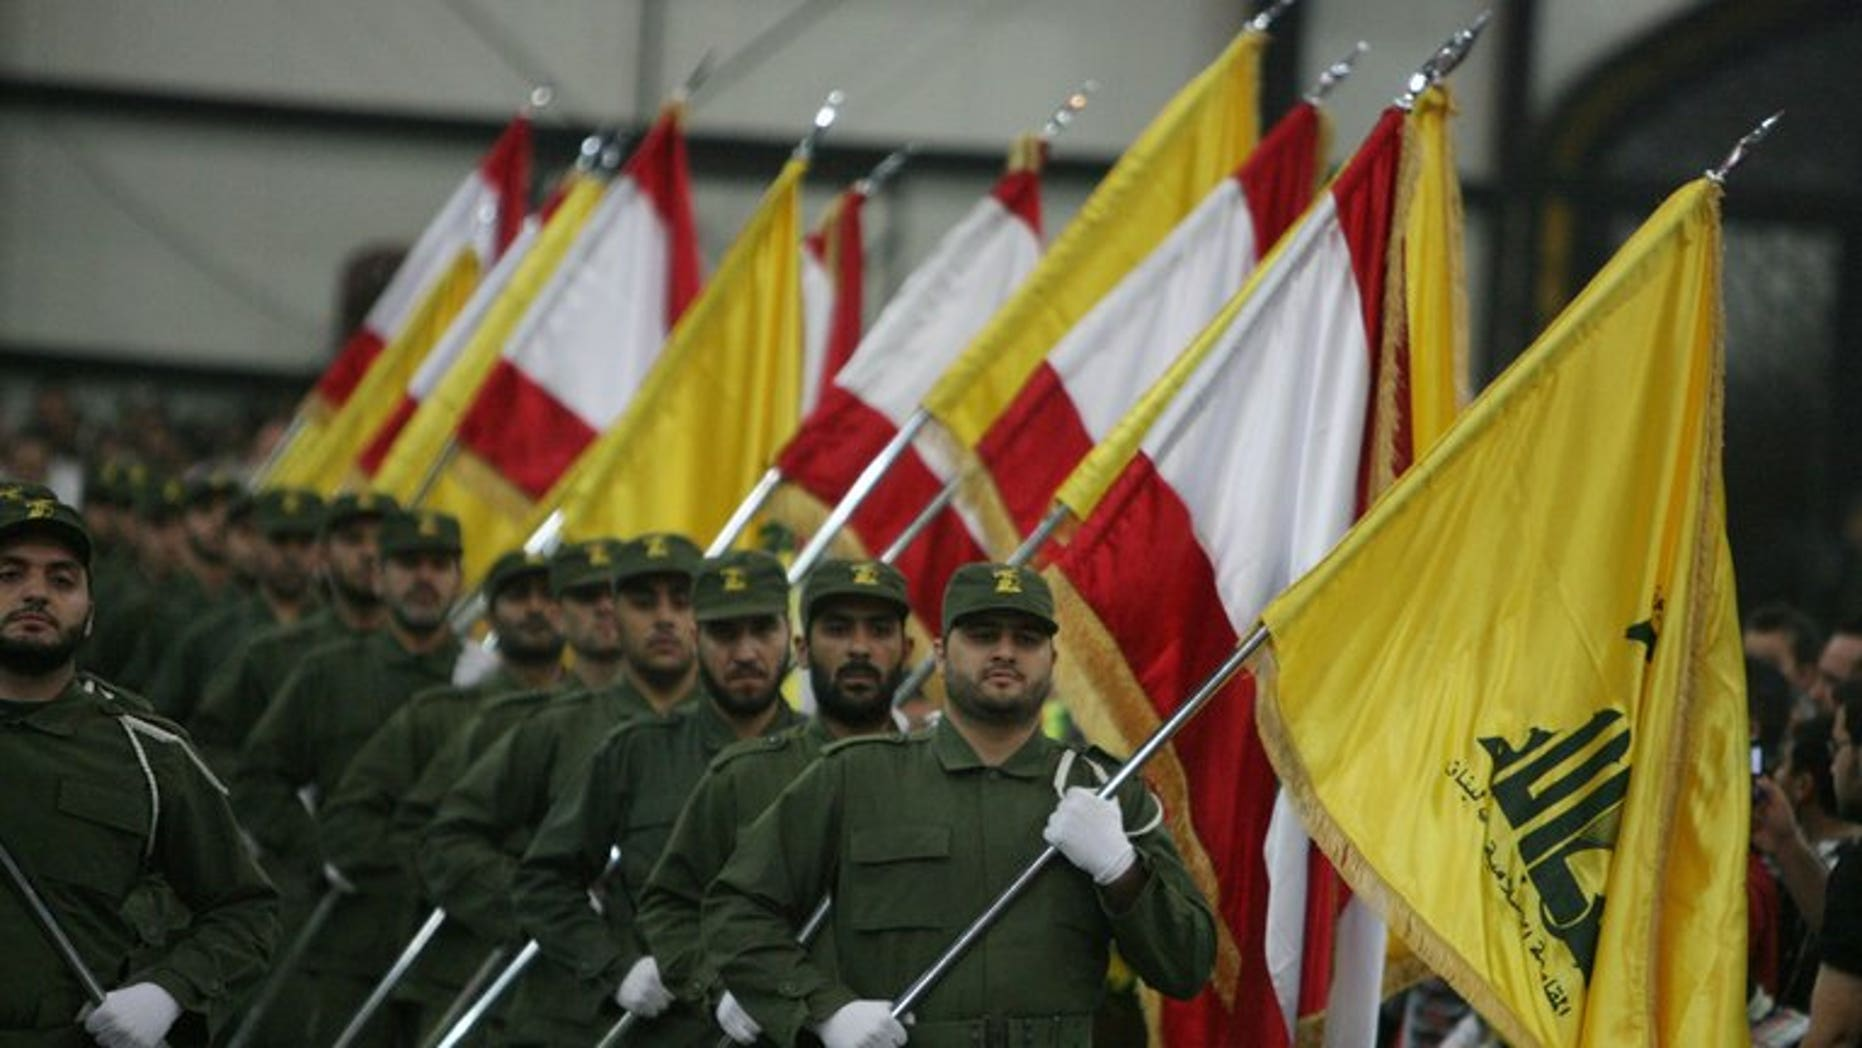 Hezbollah fighters hold up Lebanese flags and the yellow flag of the militant Shiite Muslim group in Beirut on November 11, 2009. Nigerian prosecutors on Monday widened charges against three Lebanese nationals accused of links to Hezbollah as their trial began with access to the courtroom restricted and the identities of witnesses concealed.